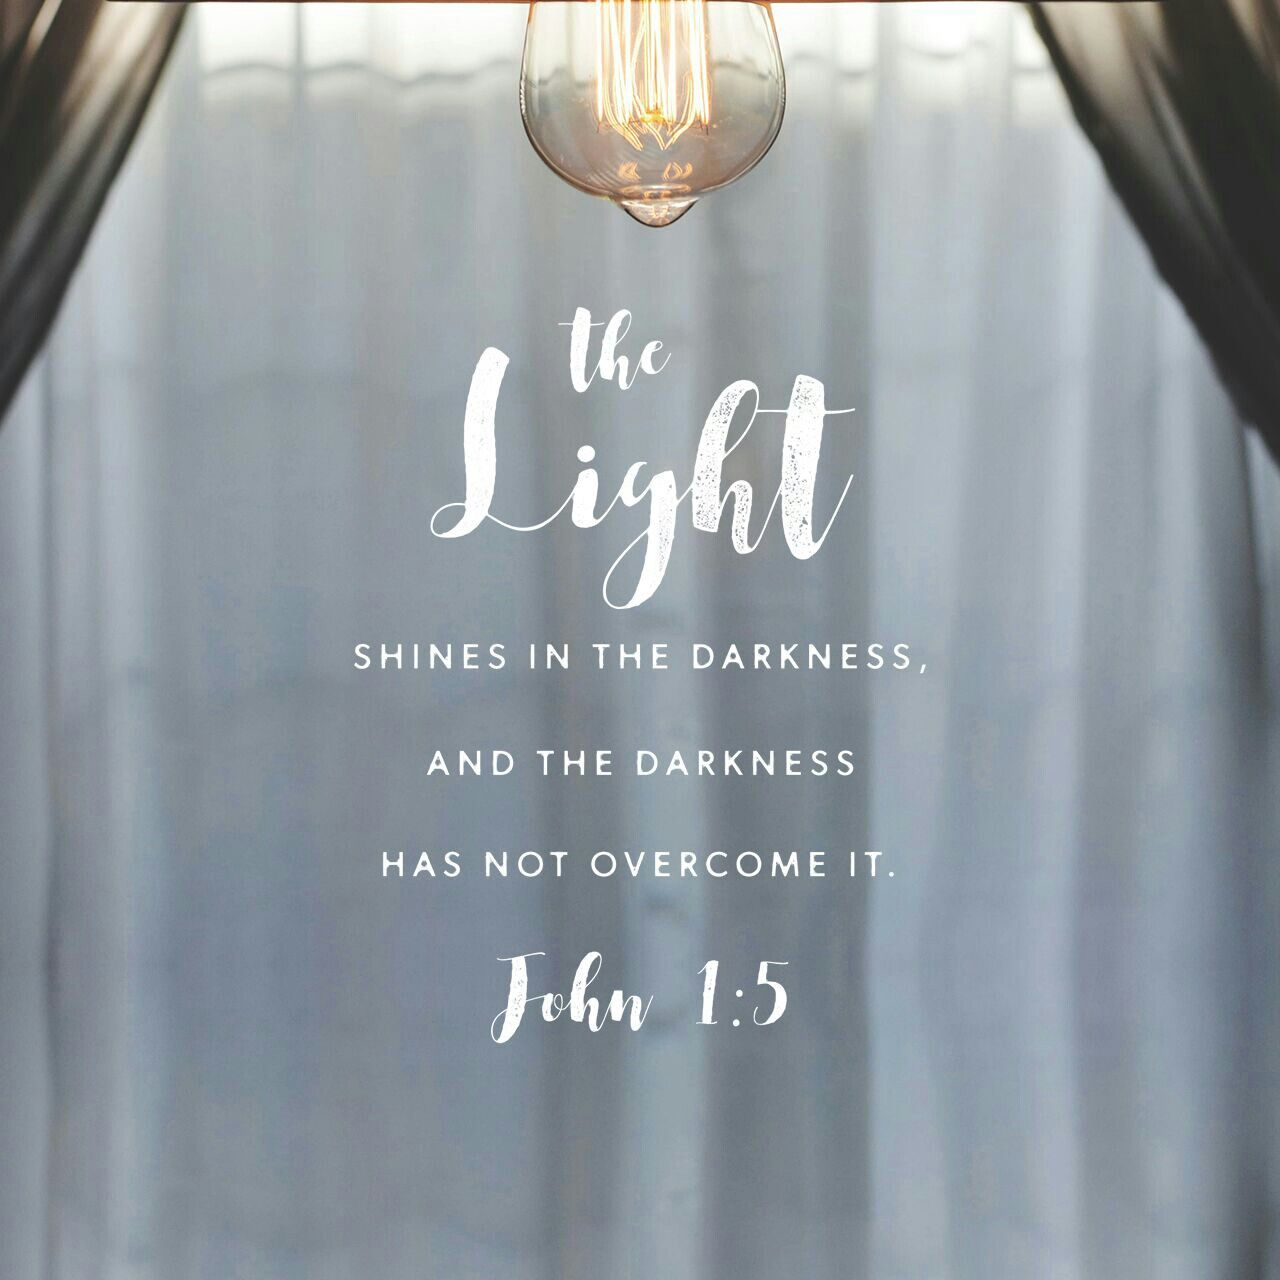 Comely Marriage Ness Has Not Overcome Daily Bibledaily Wordbible Verses Quotesshort Things I Want My Daughters To Know About Love Light Shines